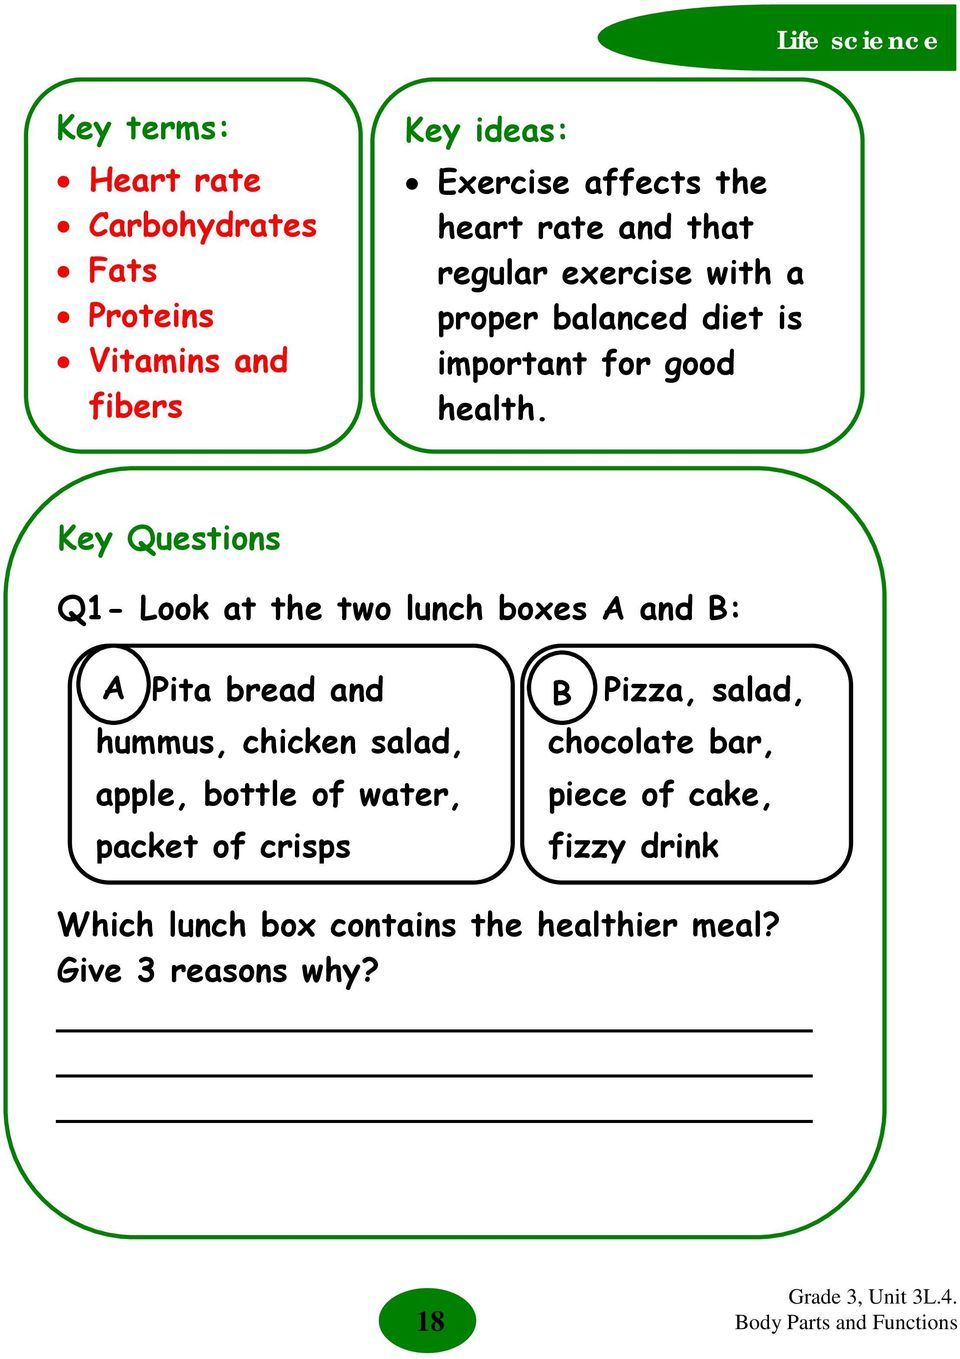 Key Questions Q1- Look at the two lunch boxes A and B: A Pita bread and hummus, chicken salad, apple, bottle of